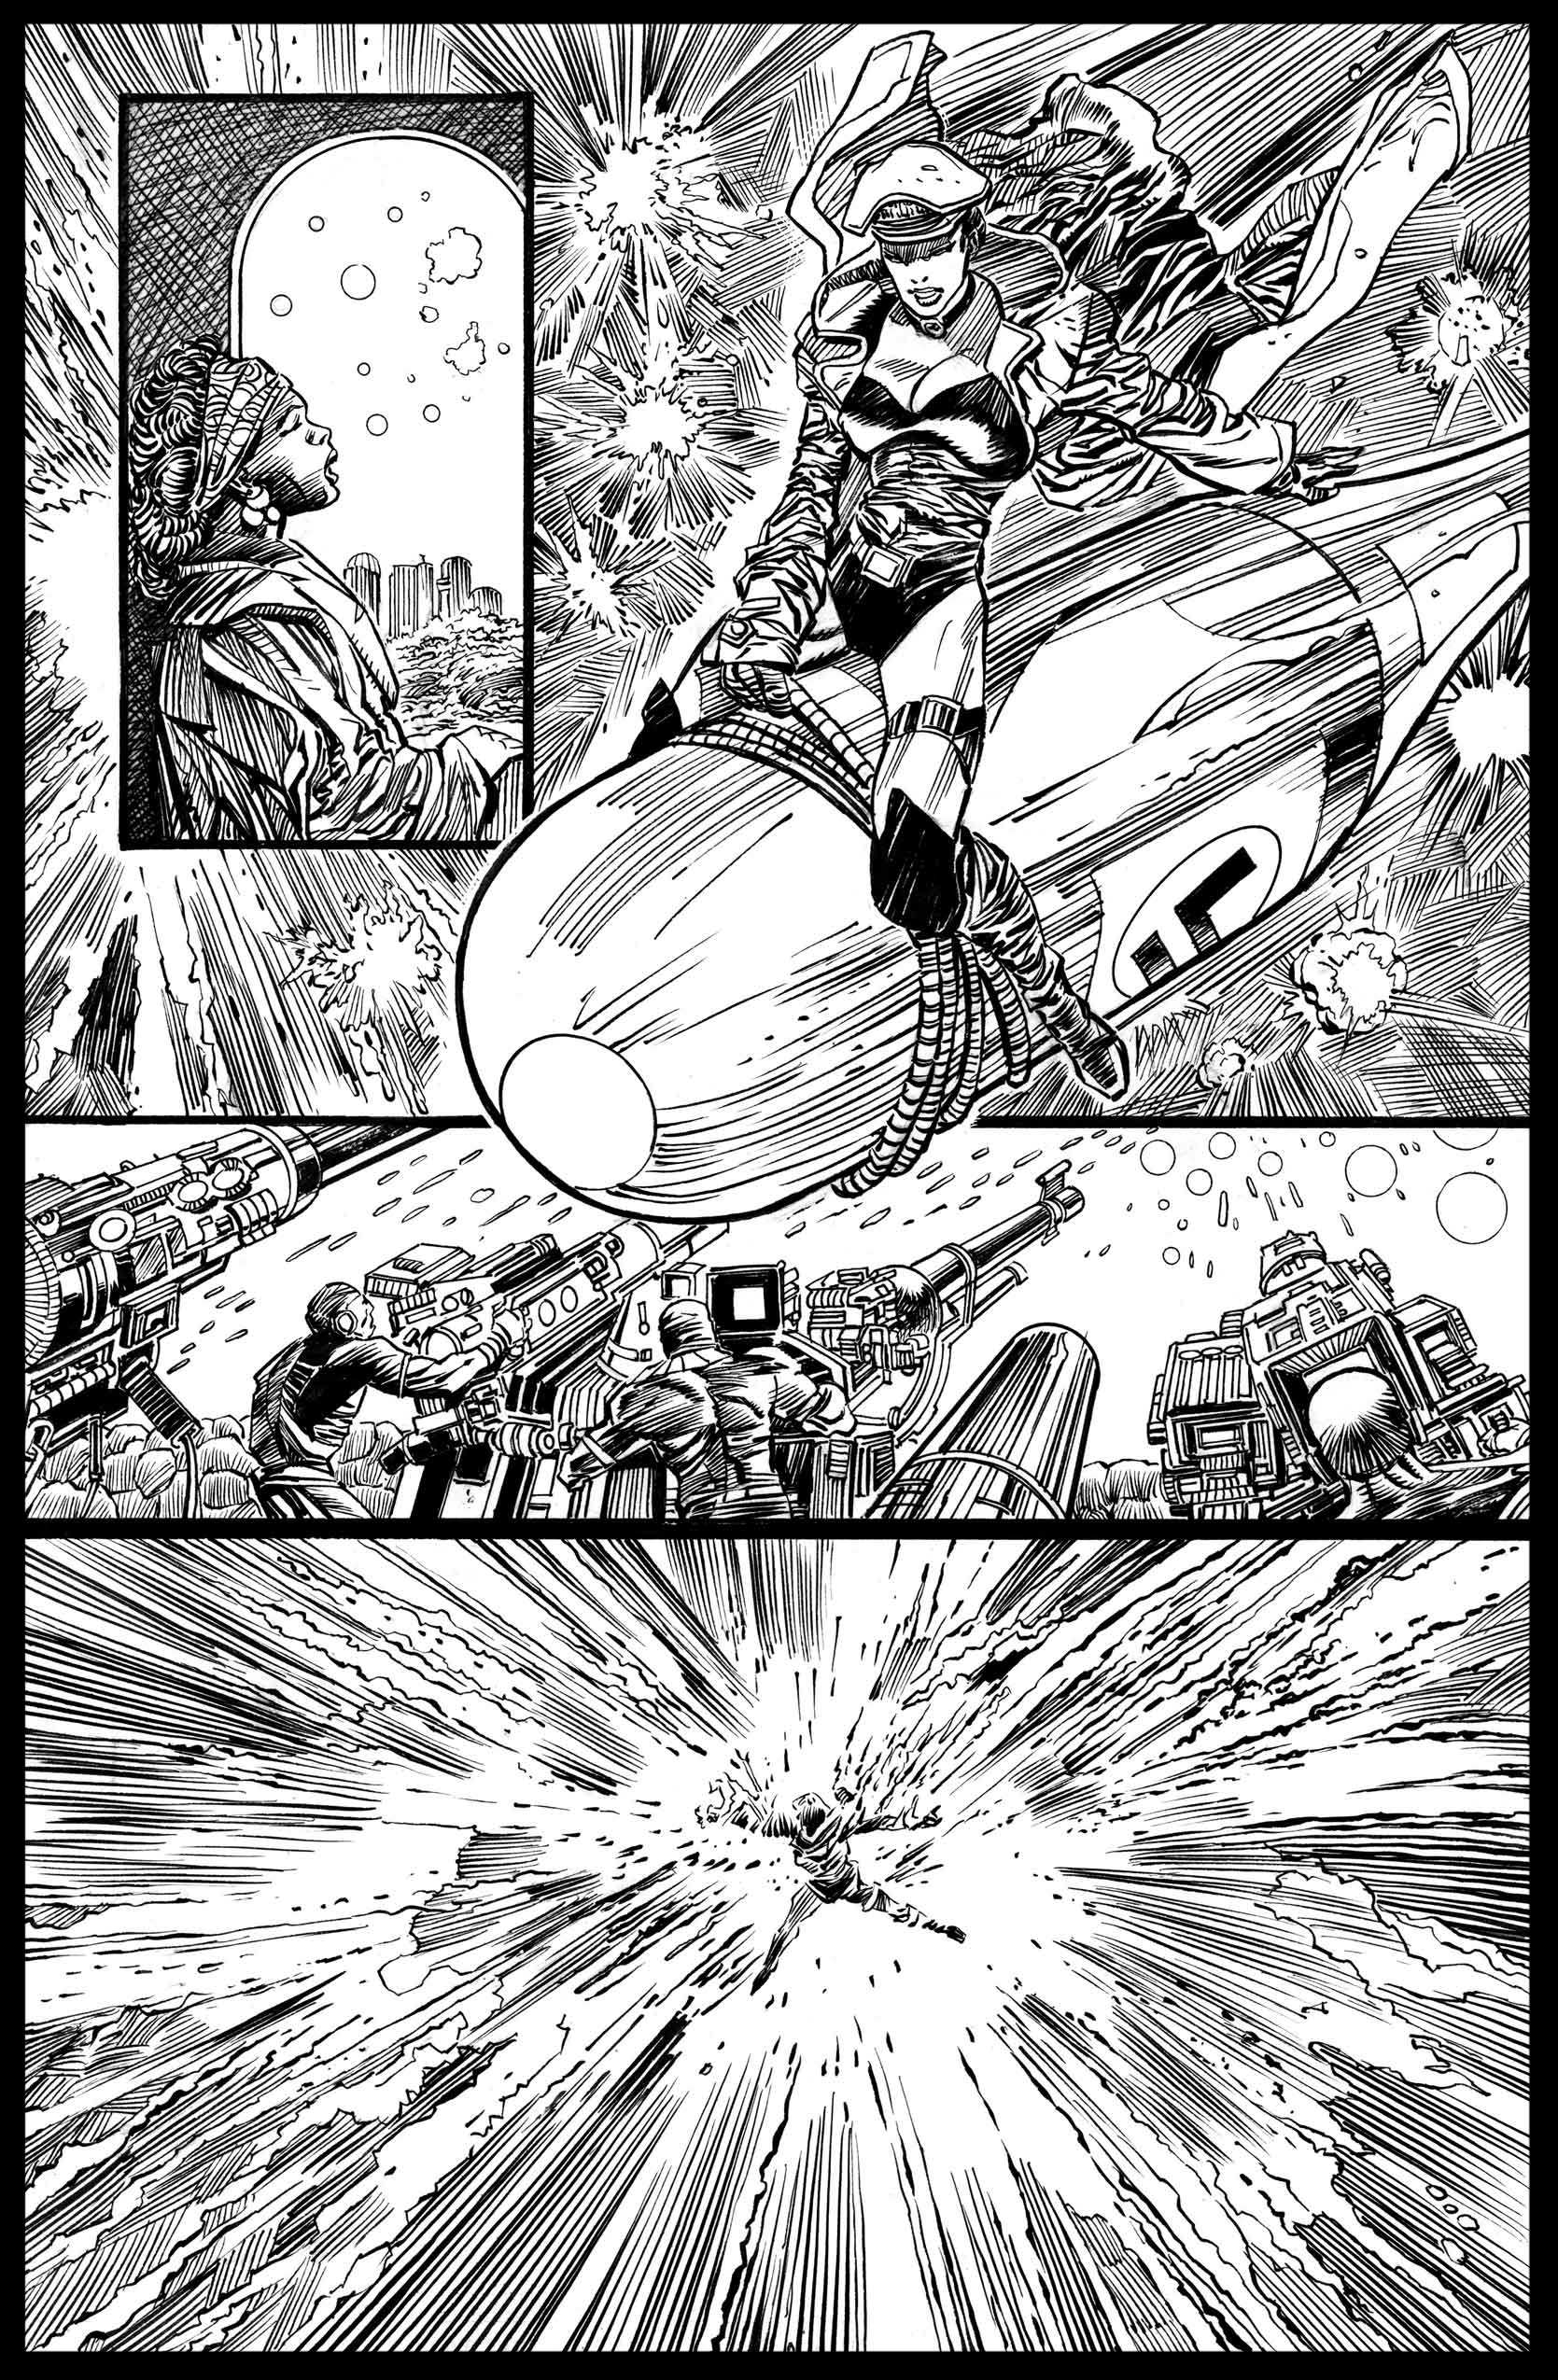 Flags of Our Fathers #3 - Page 10 - Pencils & Inks